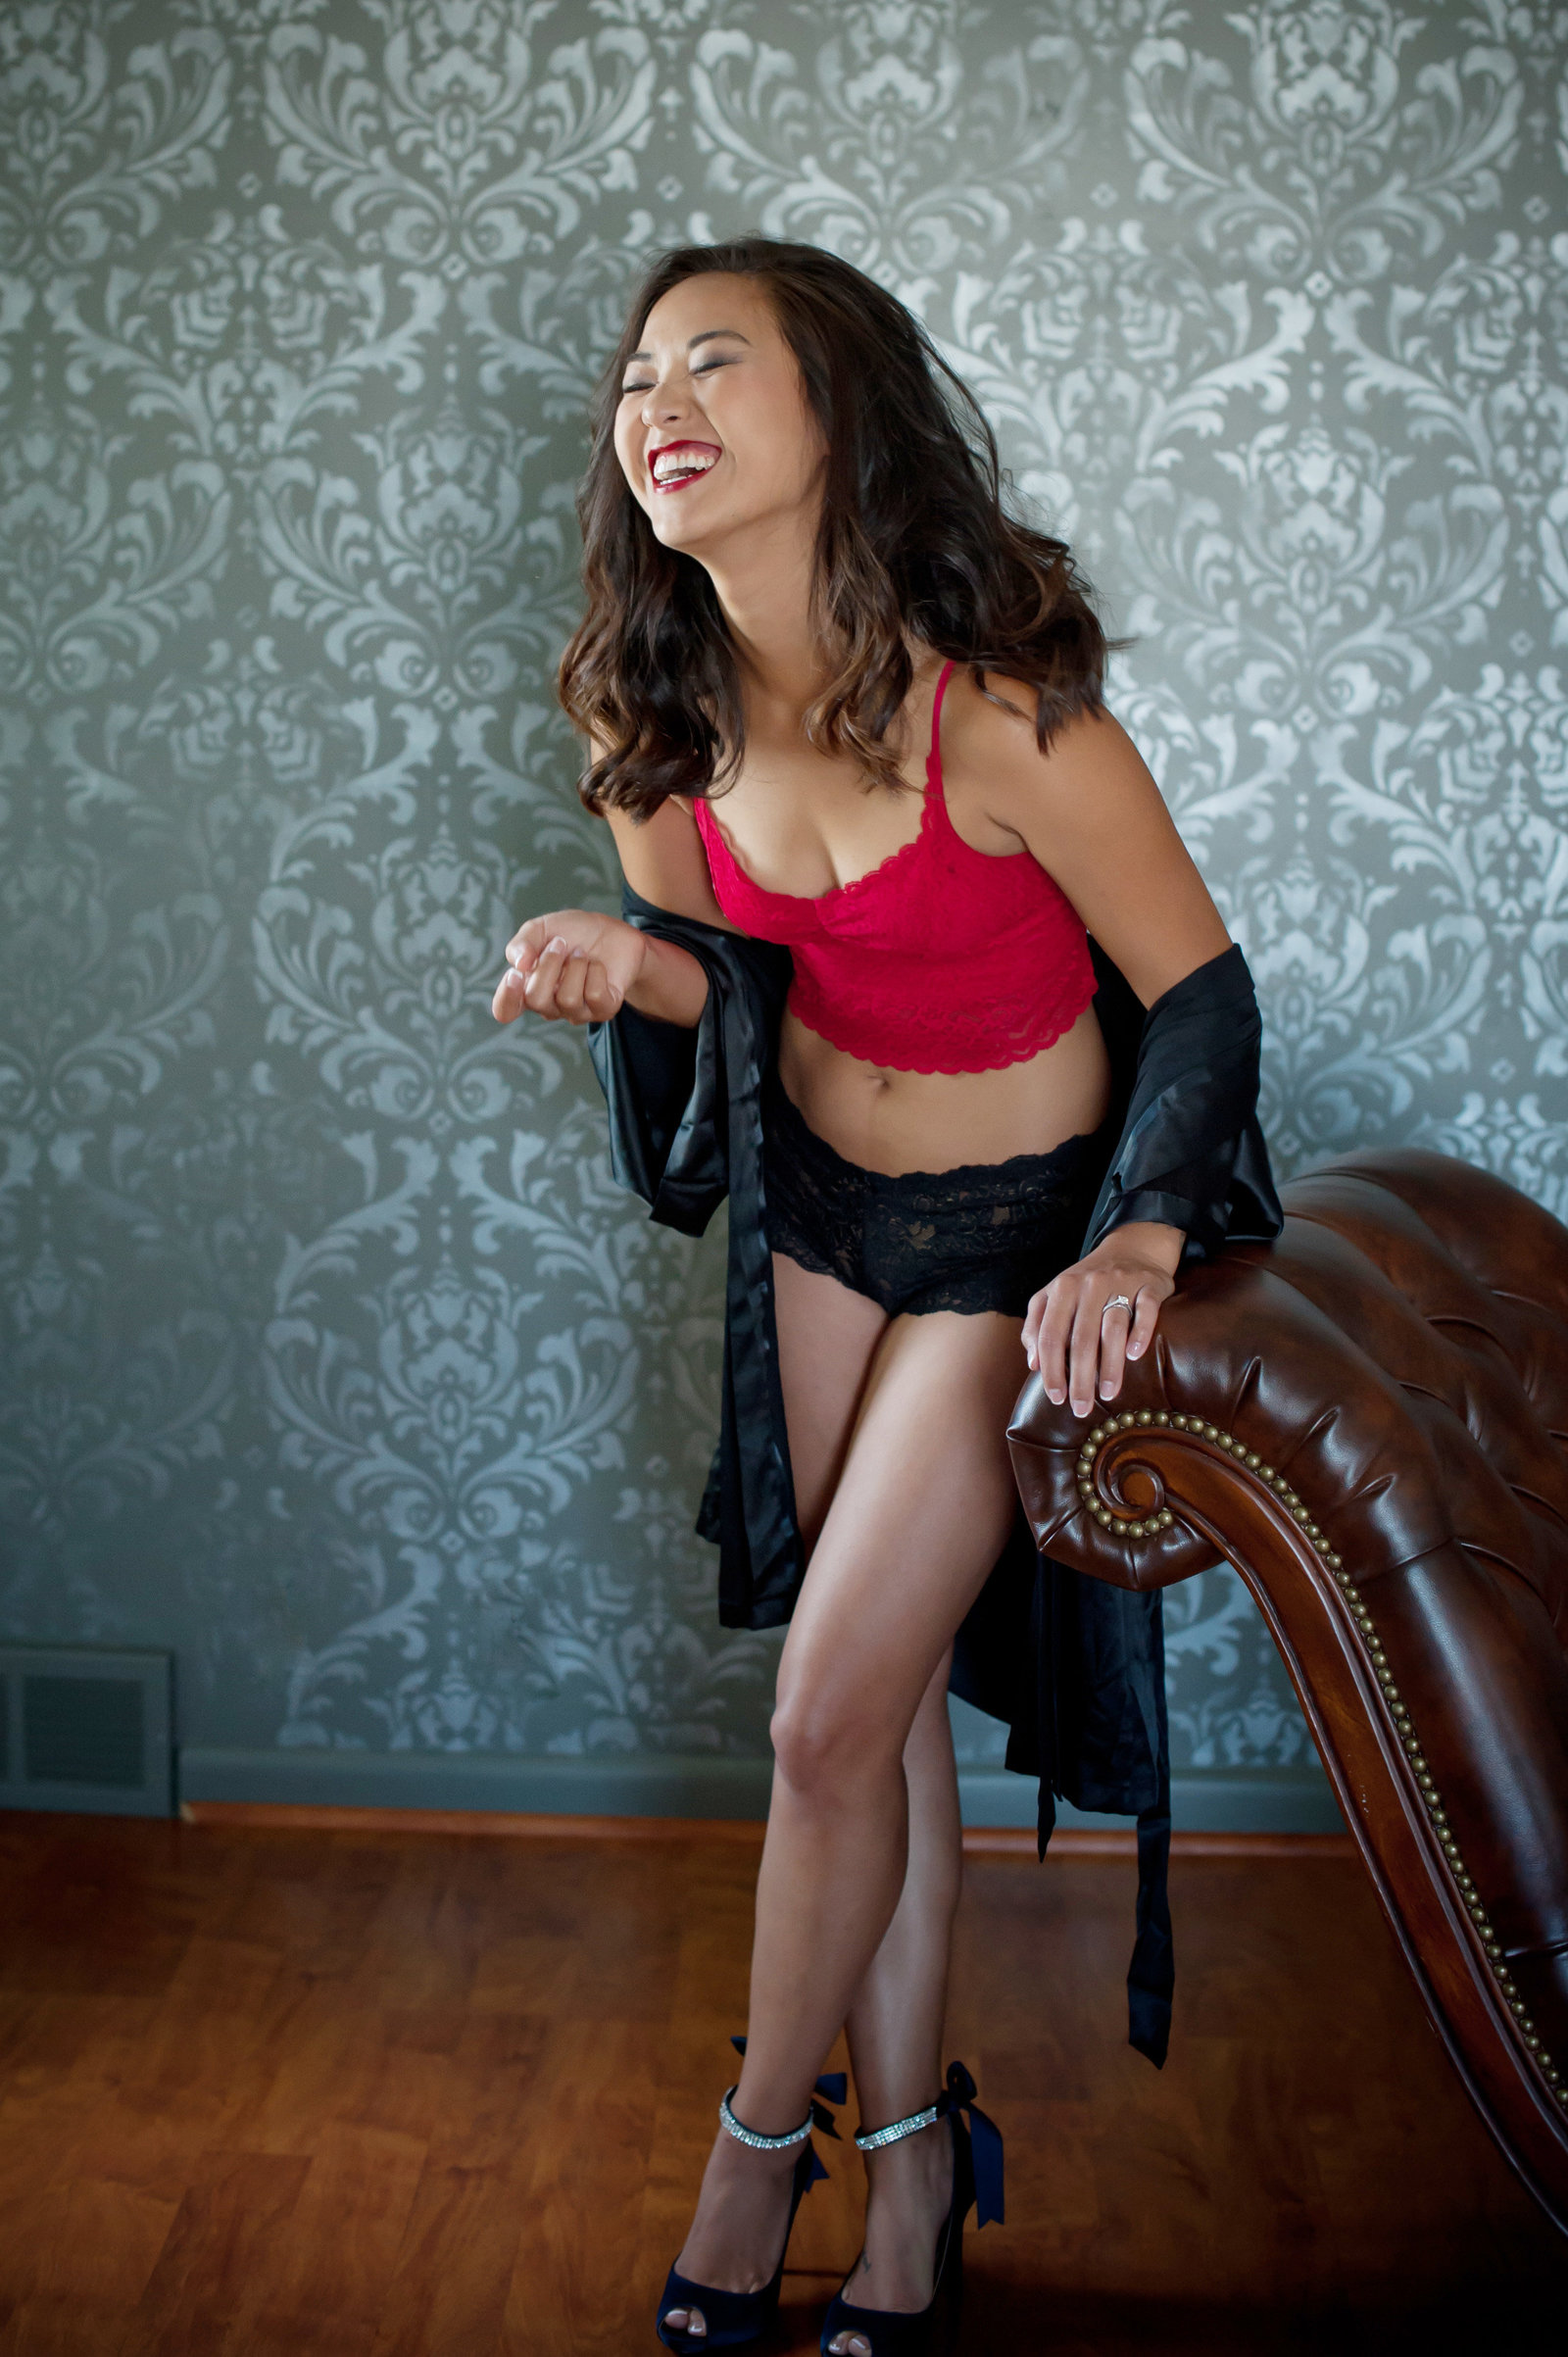 minneapolis-boudoir-photography-199